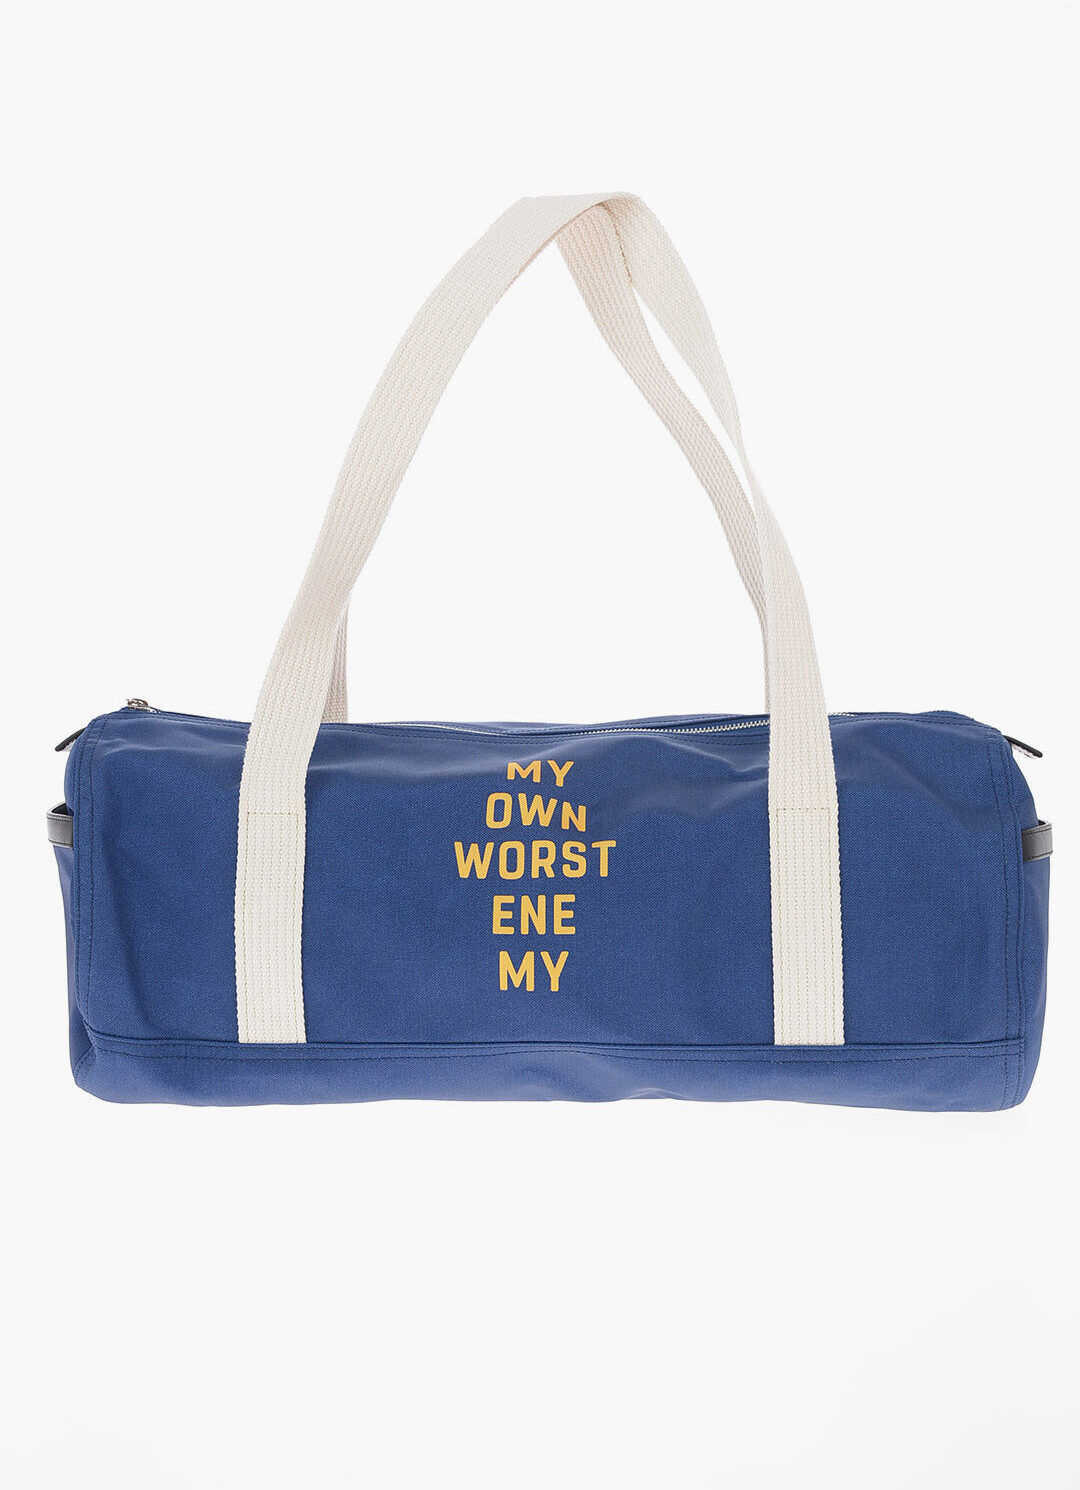 Céline Fabric MY OWN WORST ENEMY Duffle Bag with Leather Details BLUE imagine b-mall.ro